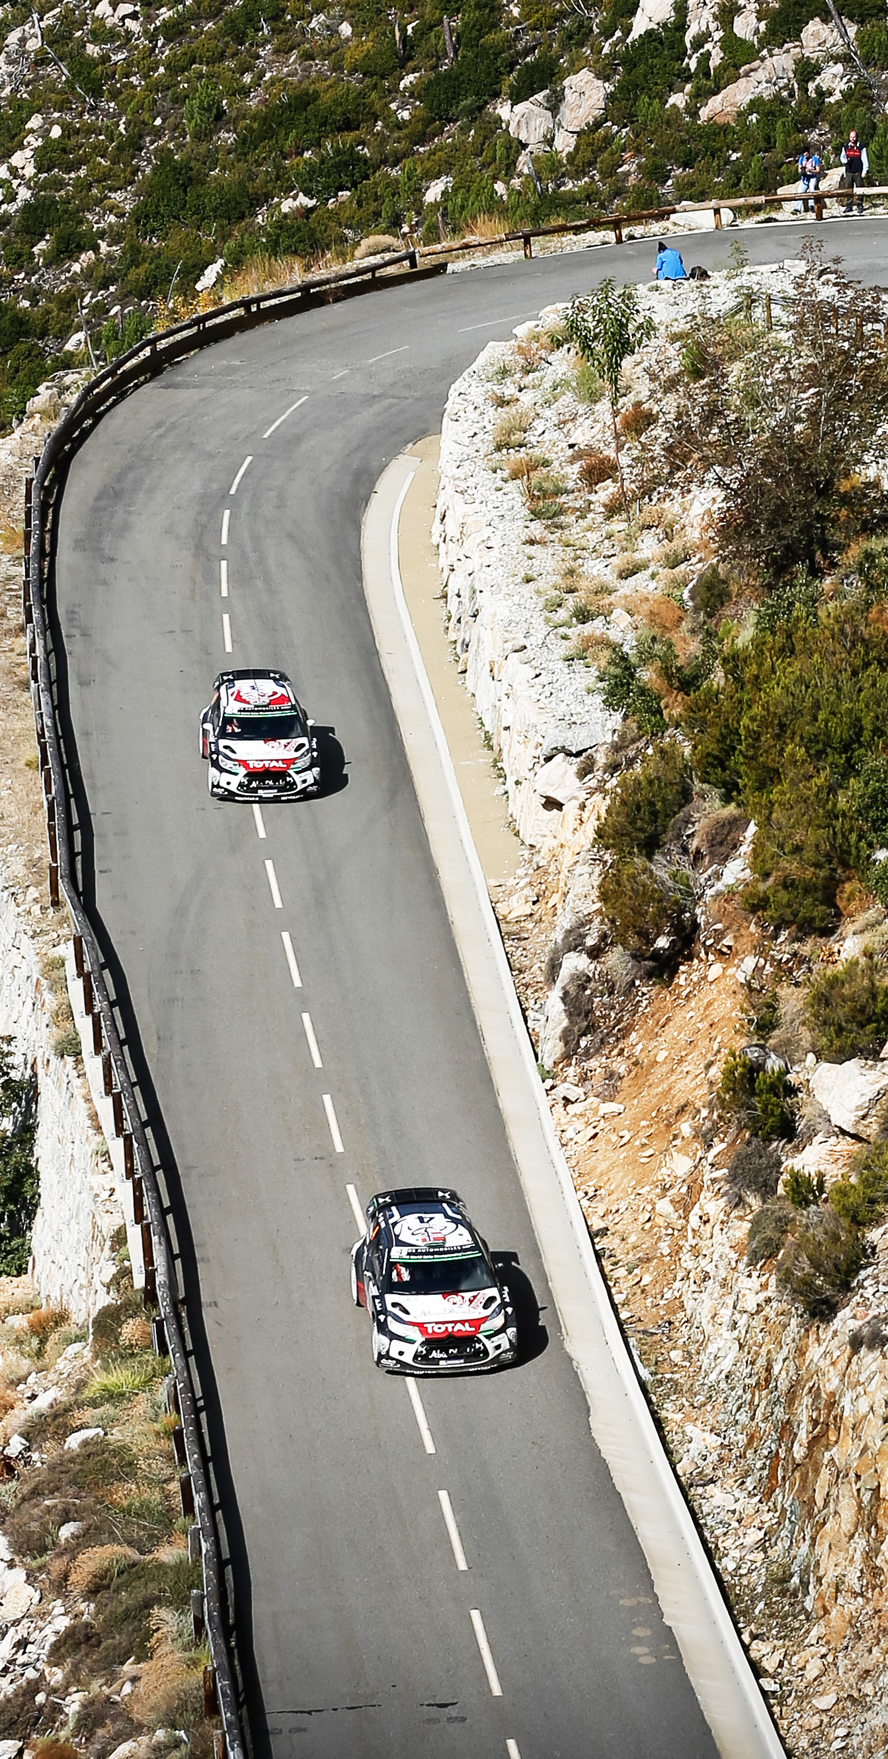 WRC TOUR DE CORSE  2015  - PHOTO : CITROEN RACING/AUSTRAL  03 Citroen Total Abu Dhabi WRT, Meeke Kris, Nagle Paul, DS3 WRC, 04 Citroen Total Abu Dhabi WRT, Ostberg Mads , Anderson Jonas, DS3 WRC, Action